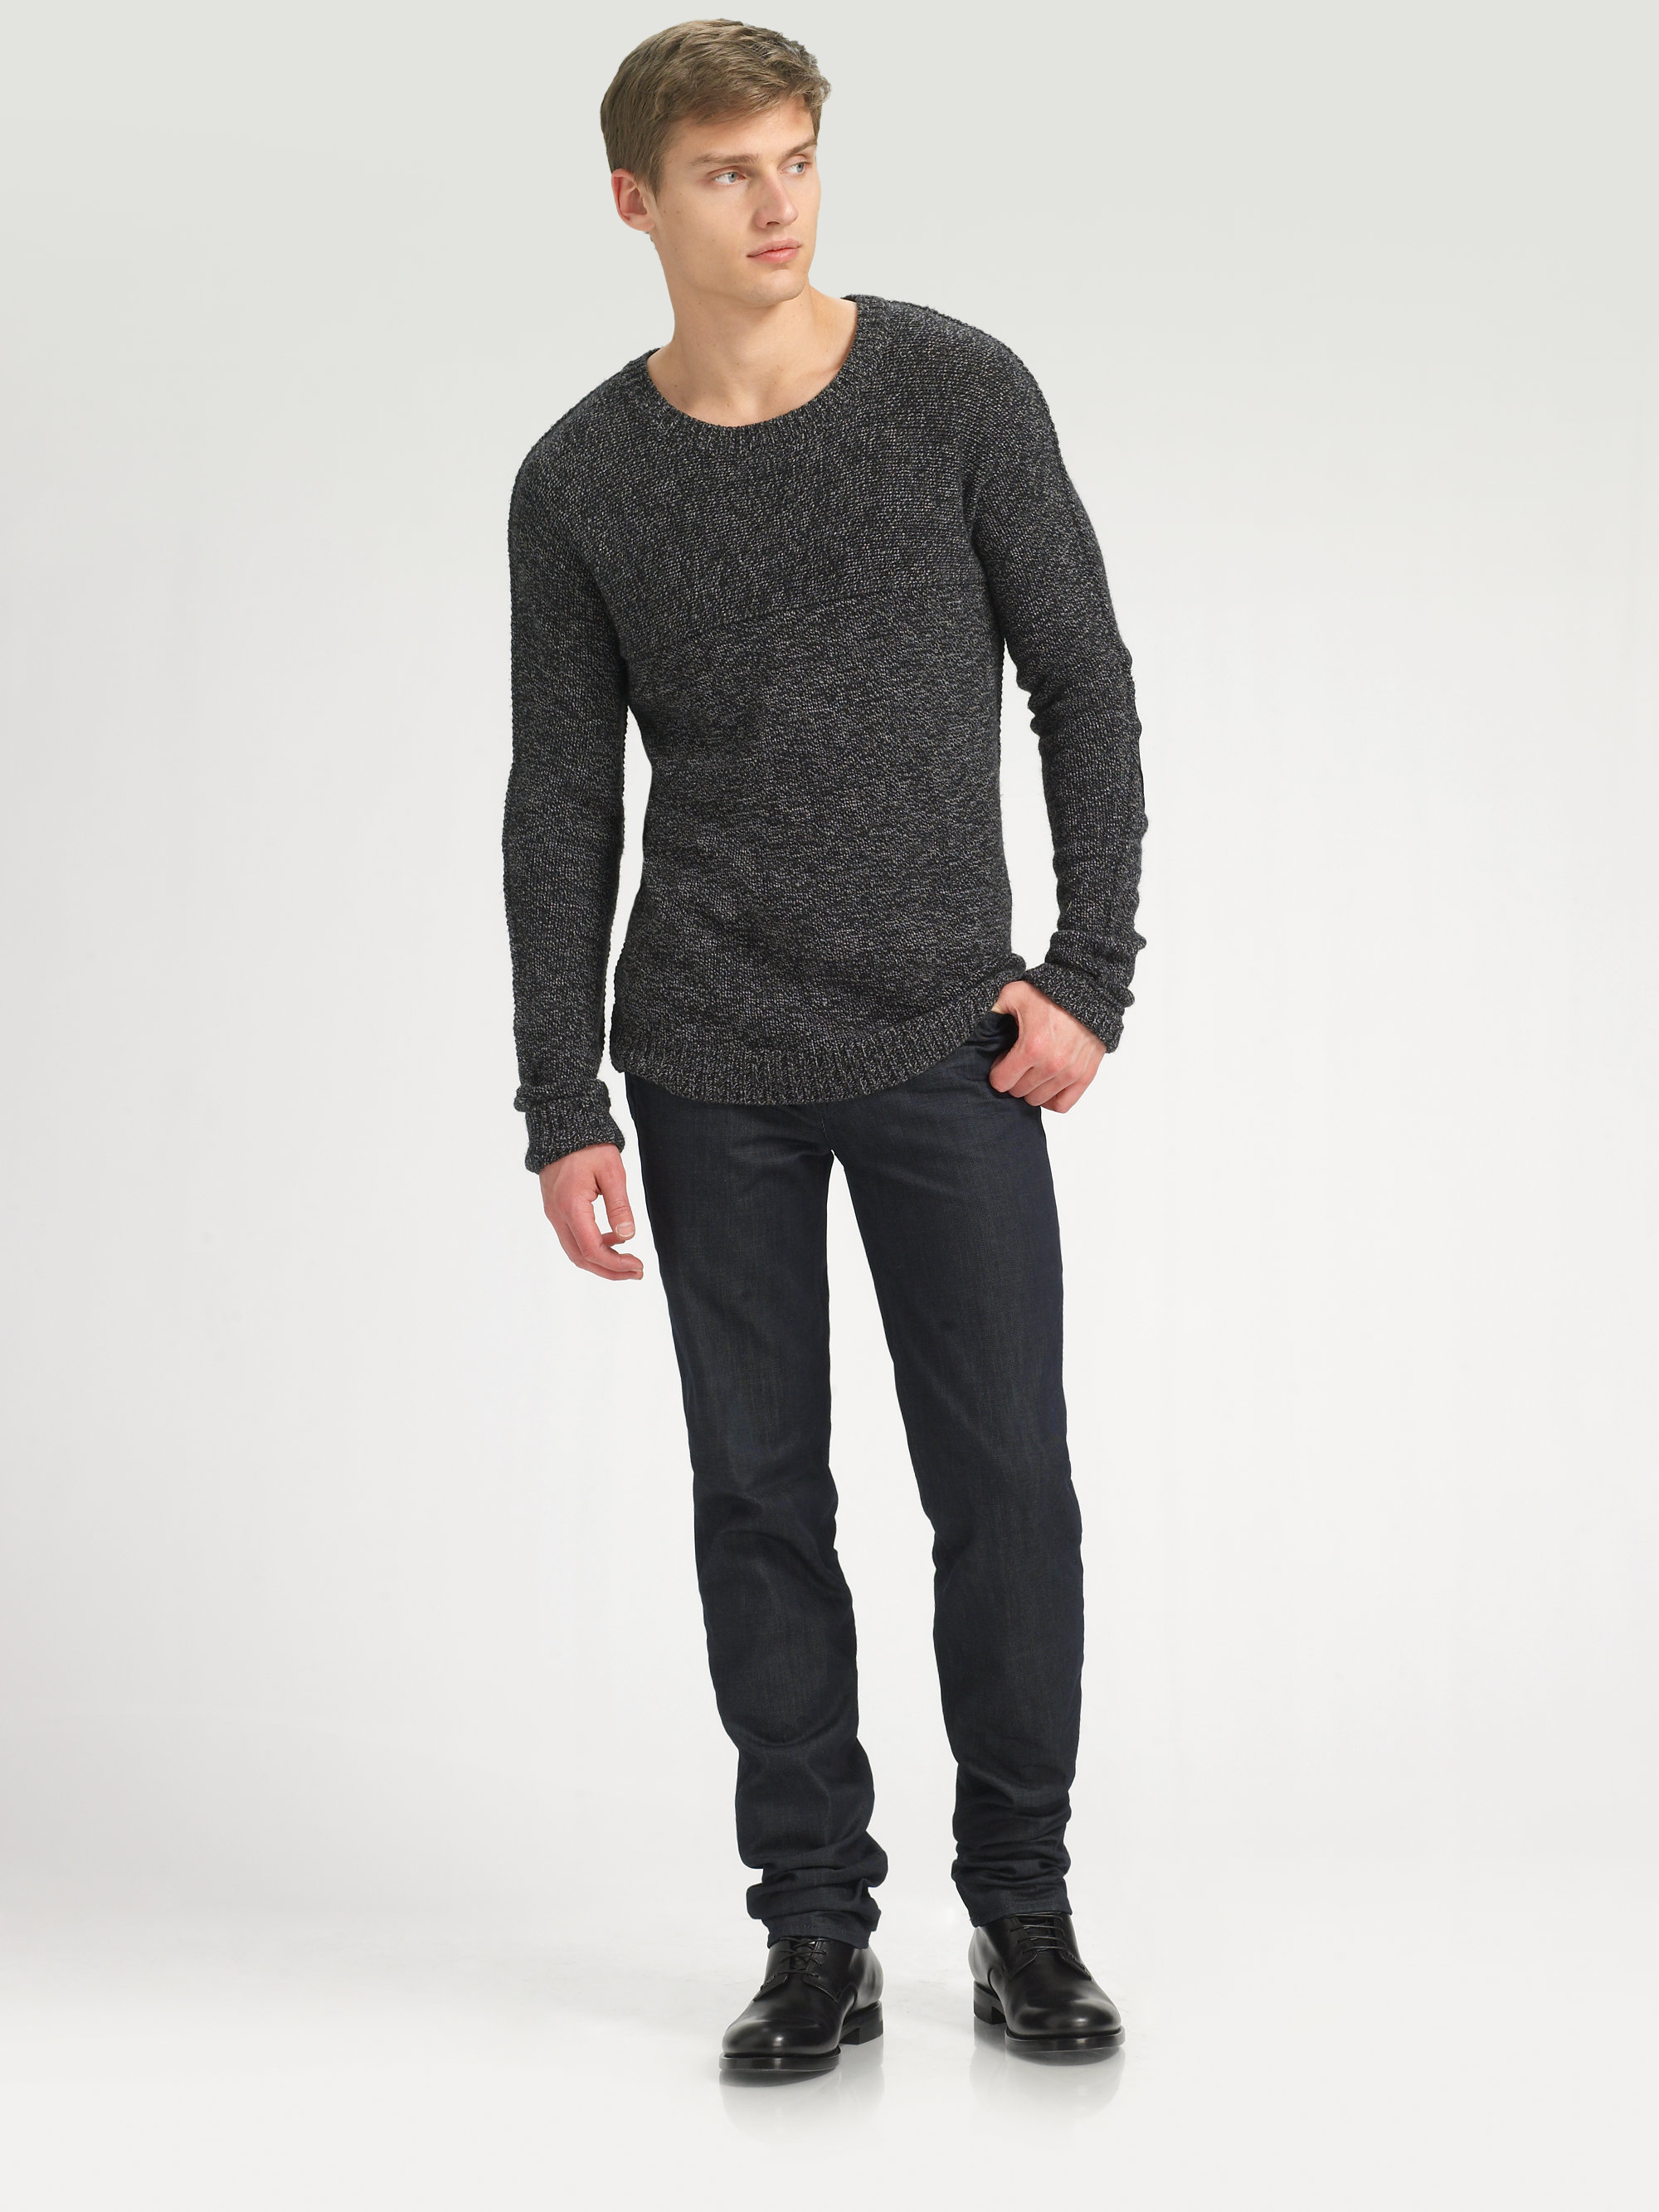 marc by marc jacobs roland sweater in gray for men lyst. Black Bedroom Furniture Sets. Home Design Ideas